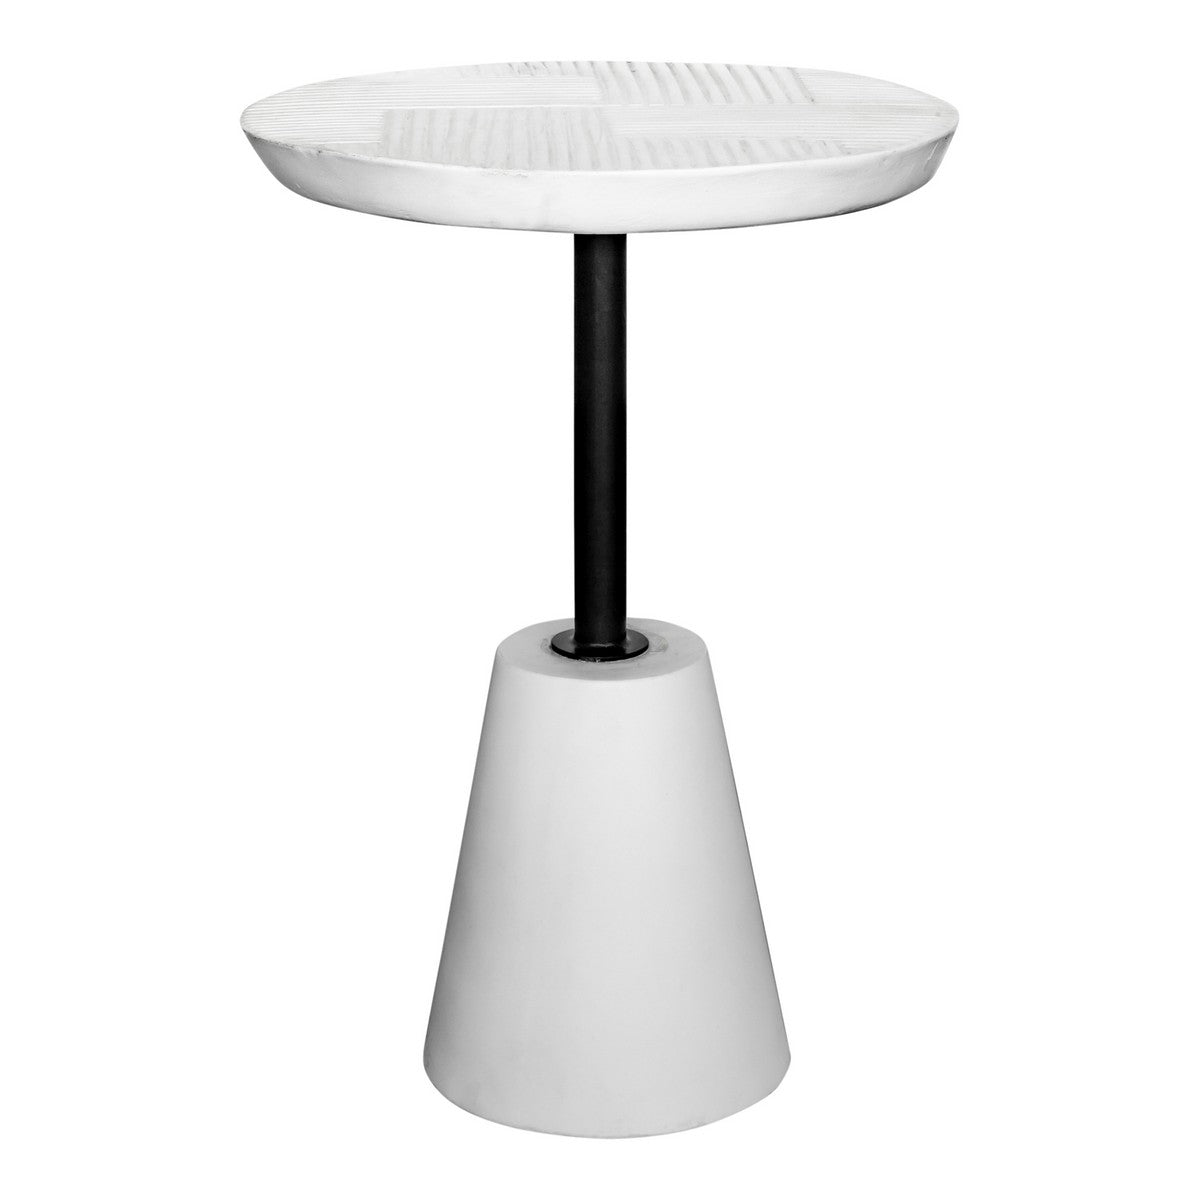 Moe's Home Collection Foundation Outdoor Accent Table White - BQ-1046-18 - Moe's Home Collection - side tables - Minimal And Modern - 1